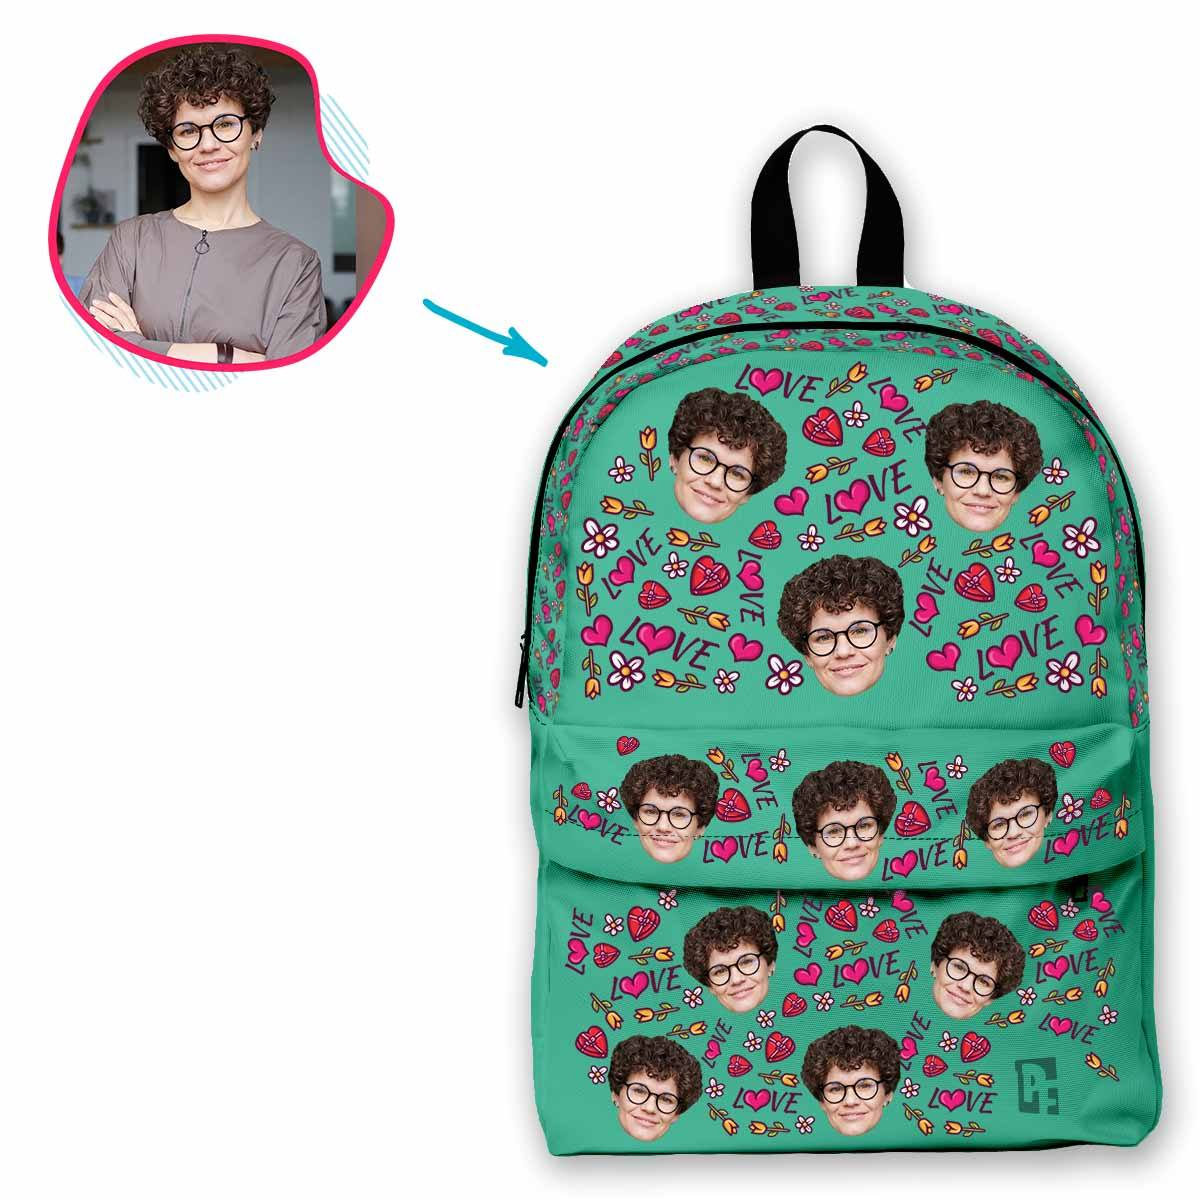 mint Hearts and Flowers classic backpack personalized with photo of face printed on it